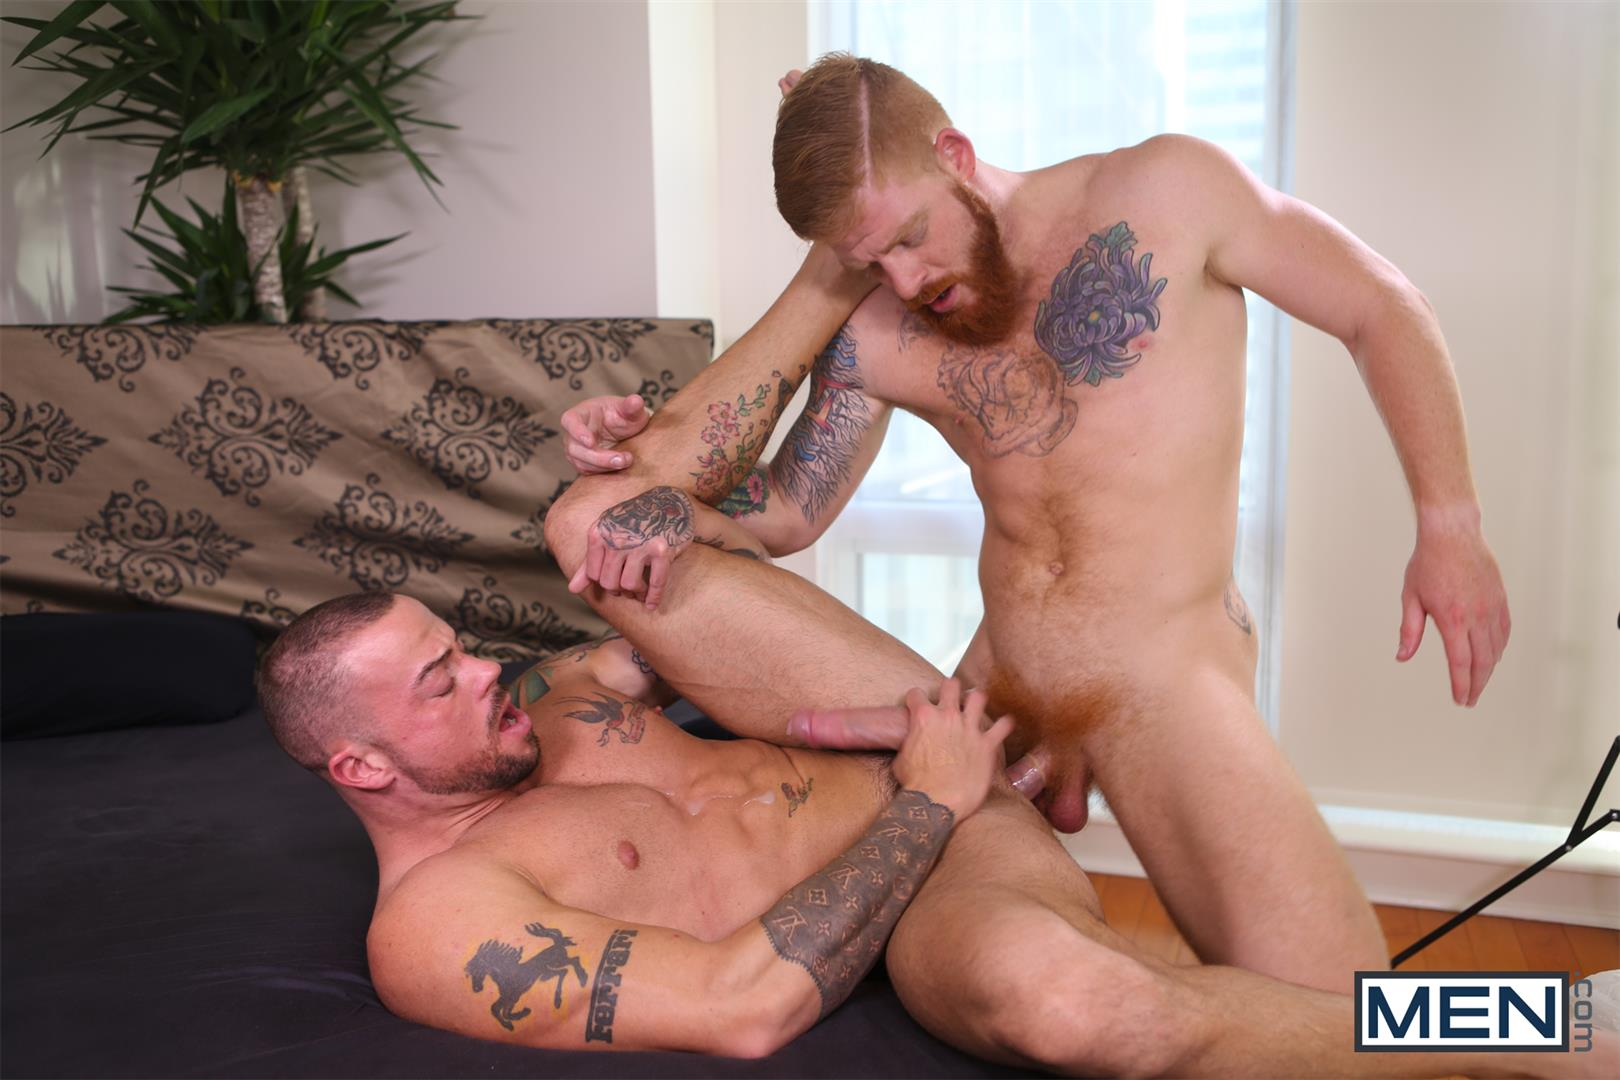 Men-Bennett-Anthony-and-Sean-Duran-Naked-Redhead-Muscle-Guys-Fucking-Amateur-Gay-Porn-15 Bennett Anthony Fucking A Muscle Hunk With His Big Ginger Cock